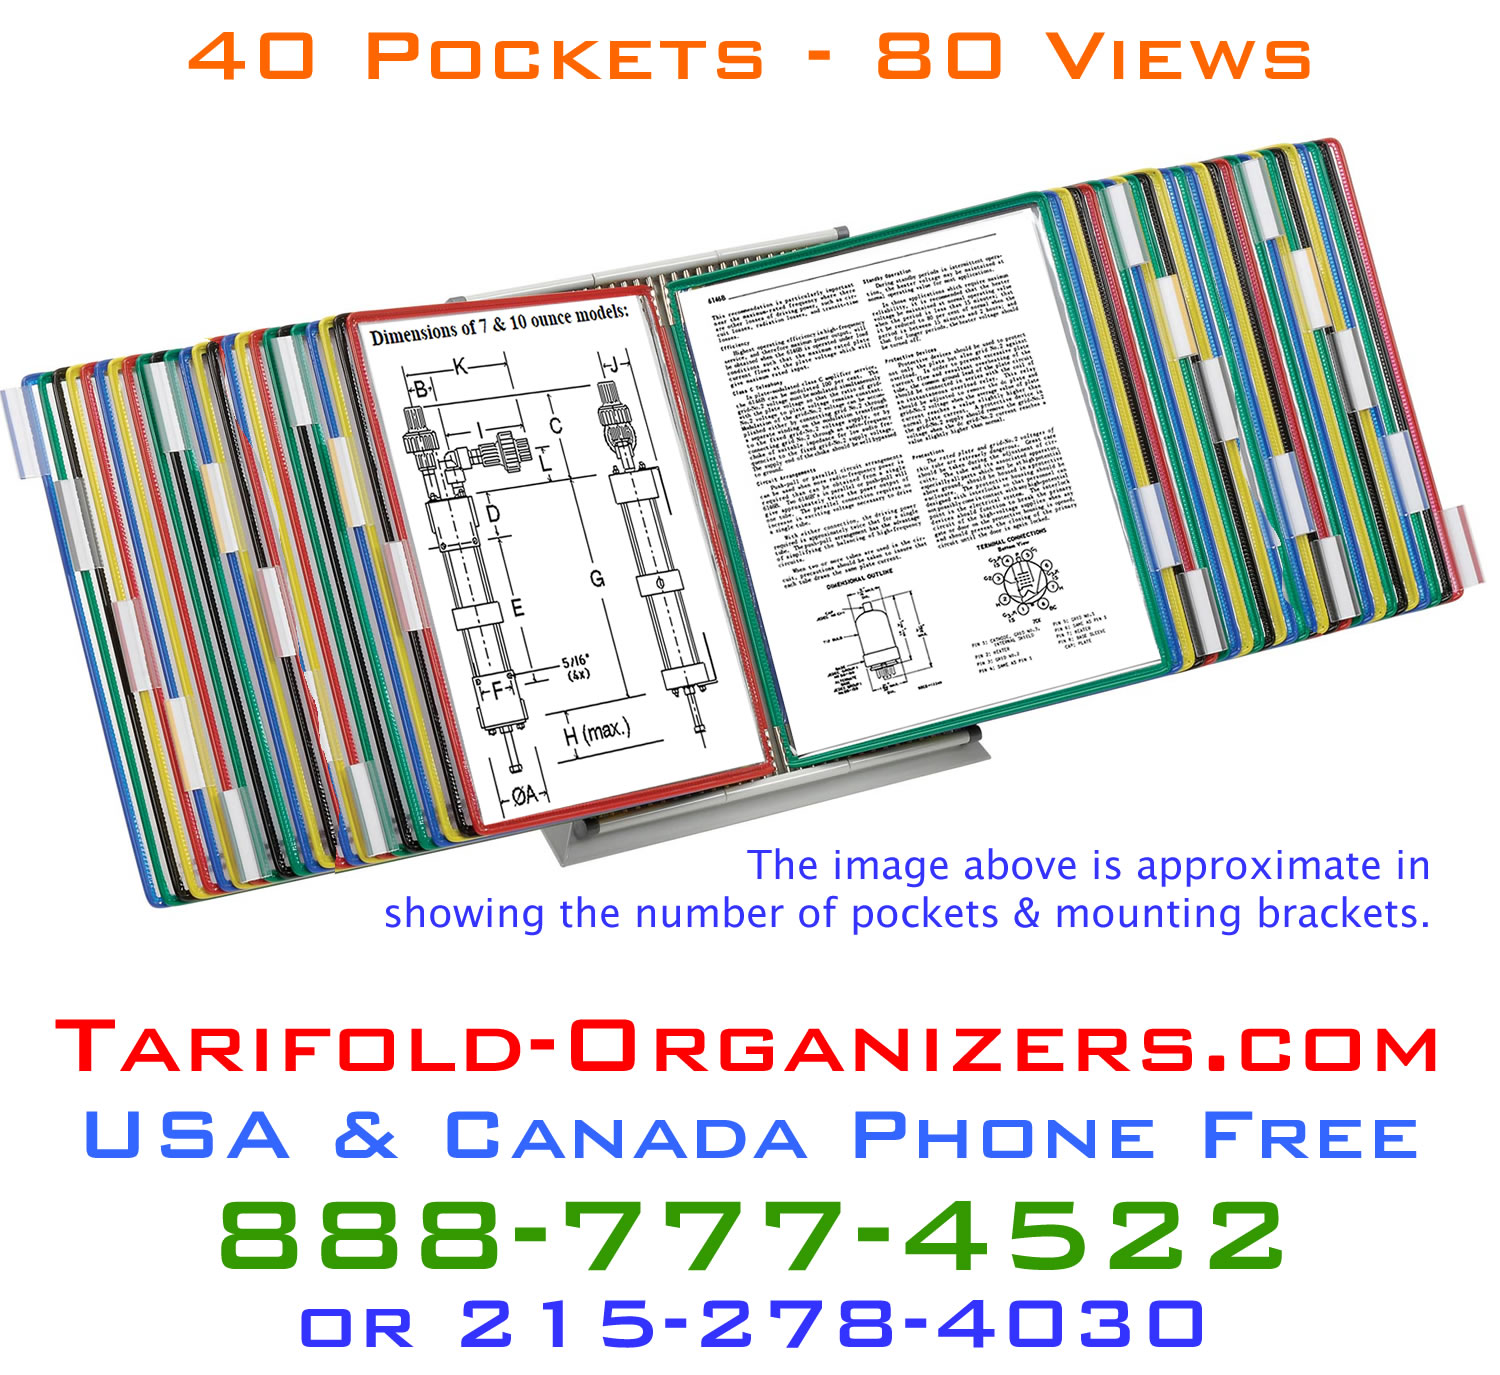 Business depends on Tarifold Organizers to do just that- get organized and stay organized.